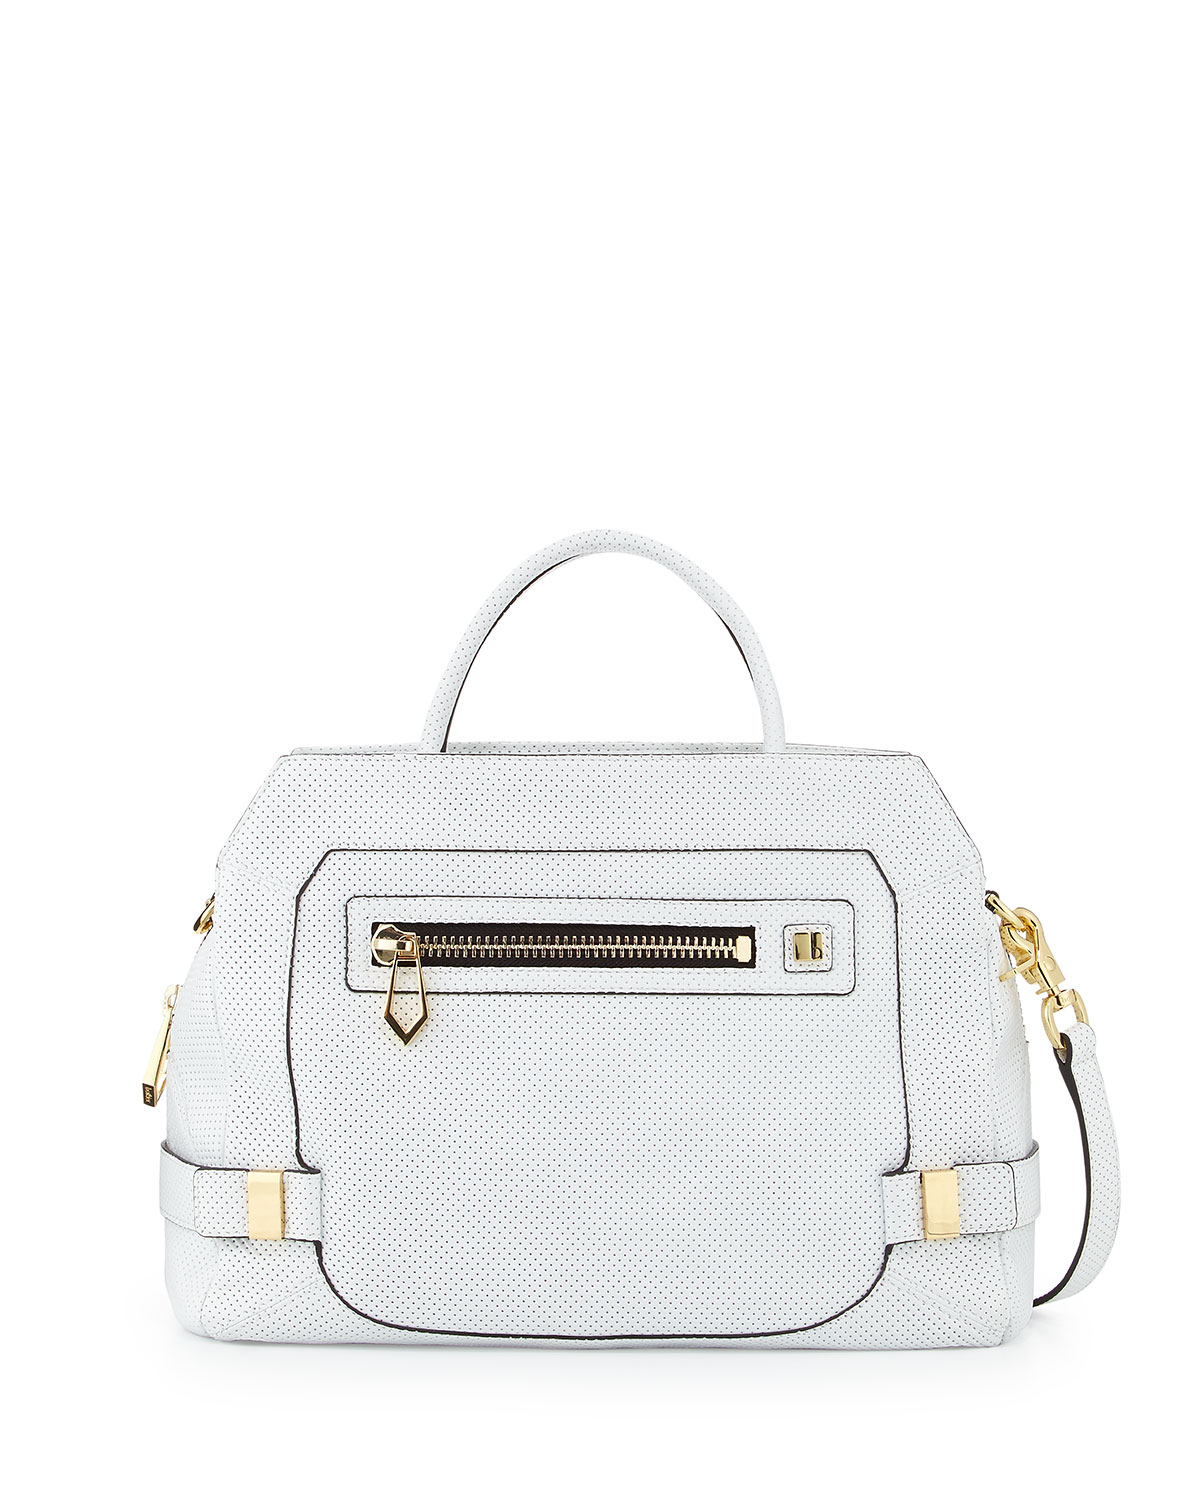 Botkier Honore Large Perforated Leather Satchel Bag White in White ...